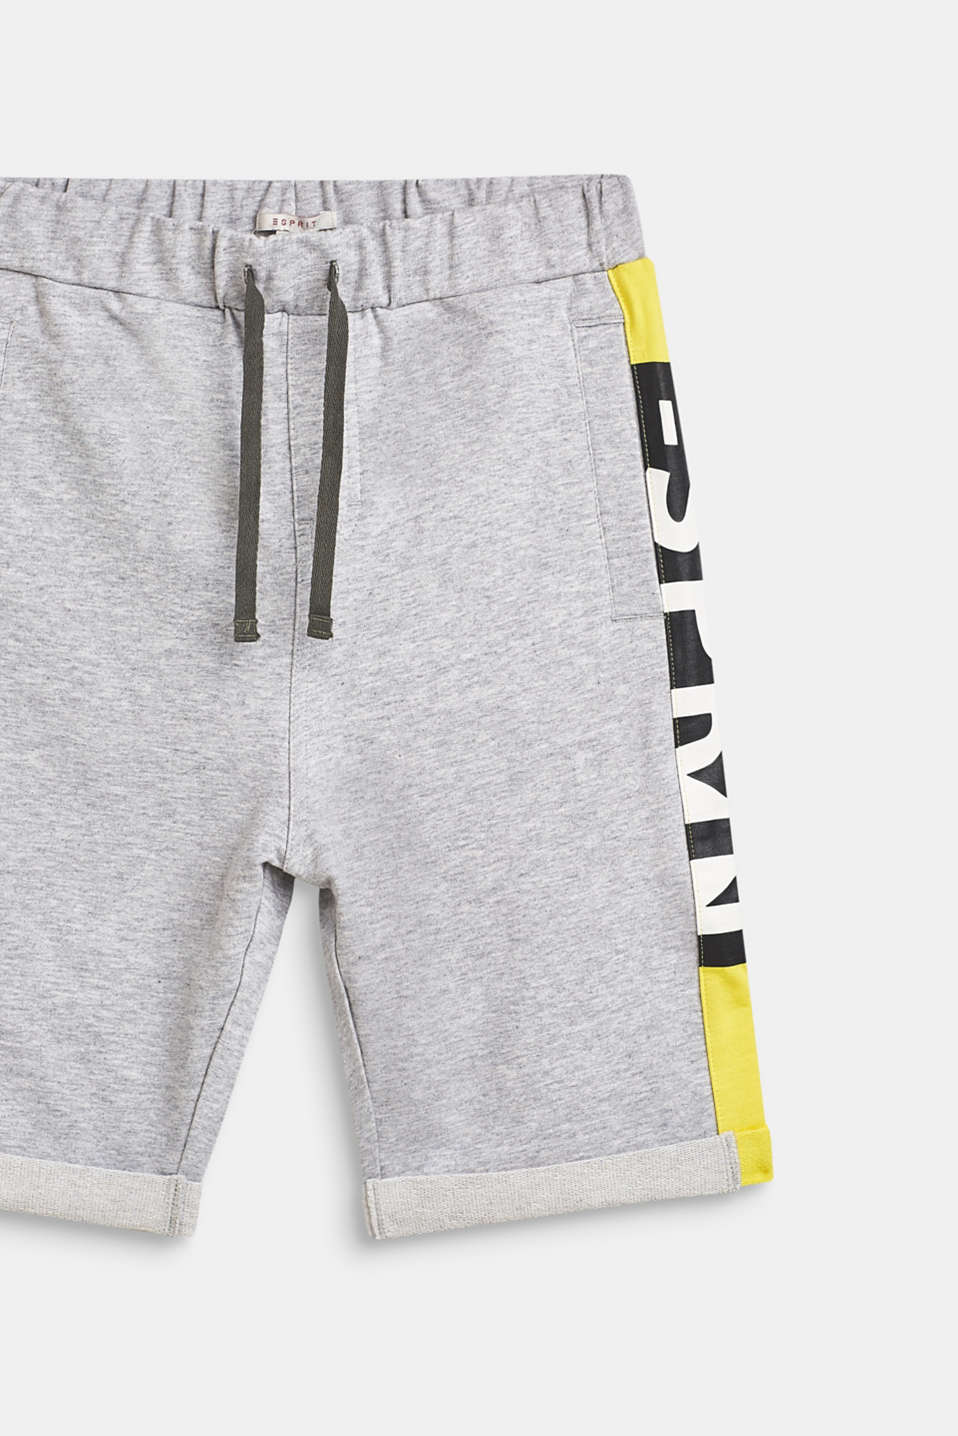 Shorts knitted, LCHEATHER SILVER, detail image number 3